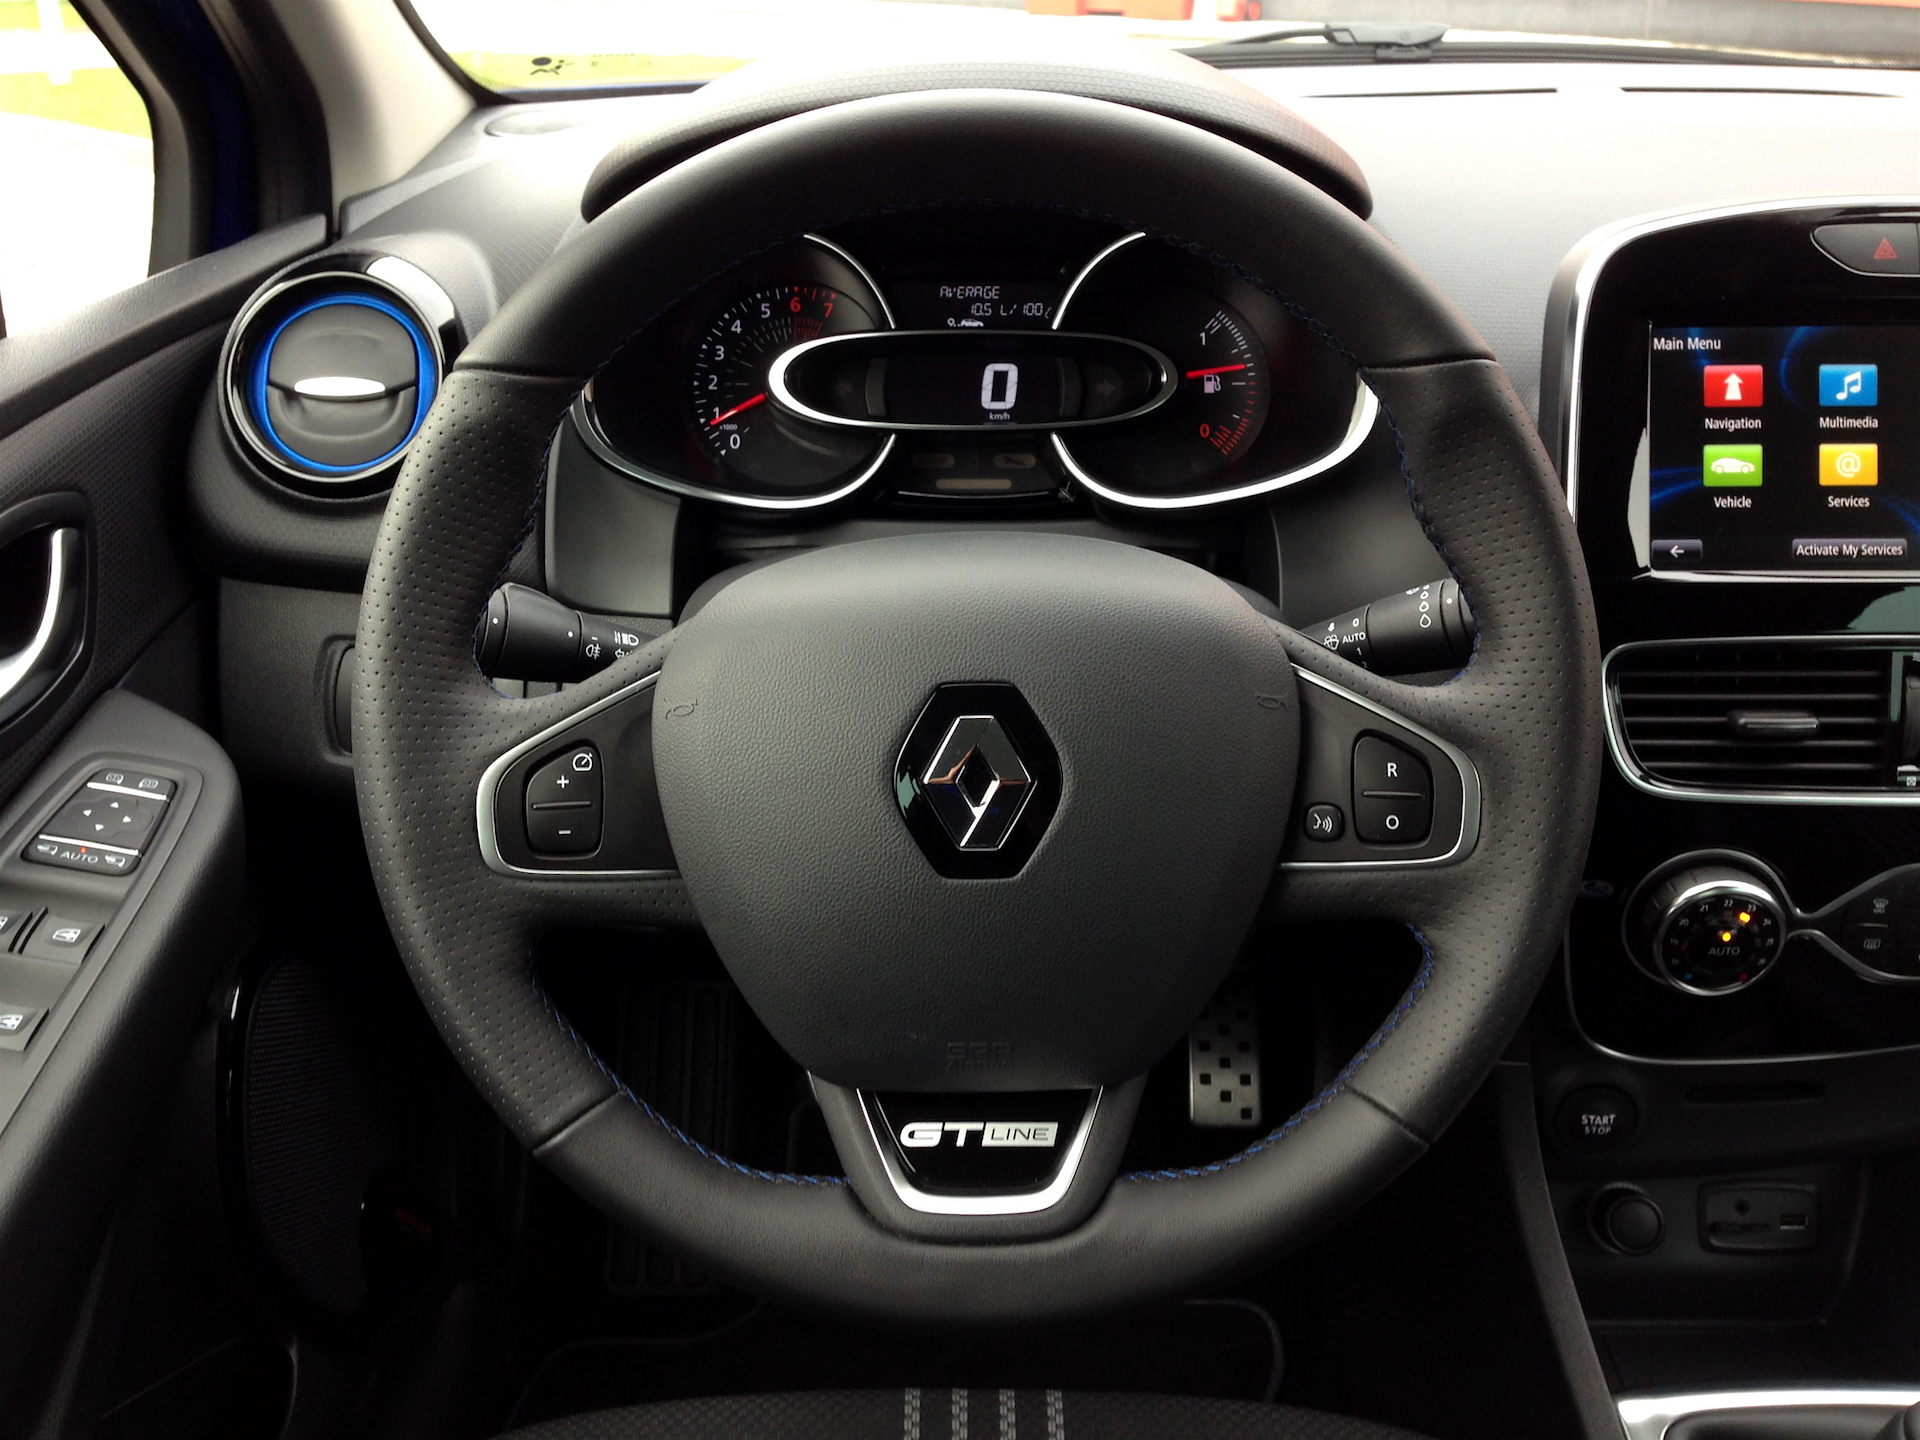 100 renault clio 2007 interior used renault clio blue for sale motors co uk renault club. Black Bedroom Furniture Sets. Home Design Ideas